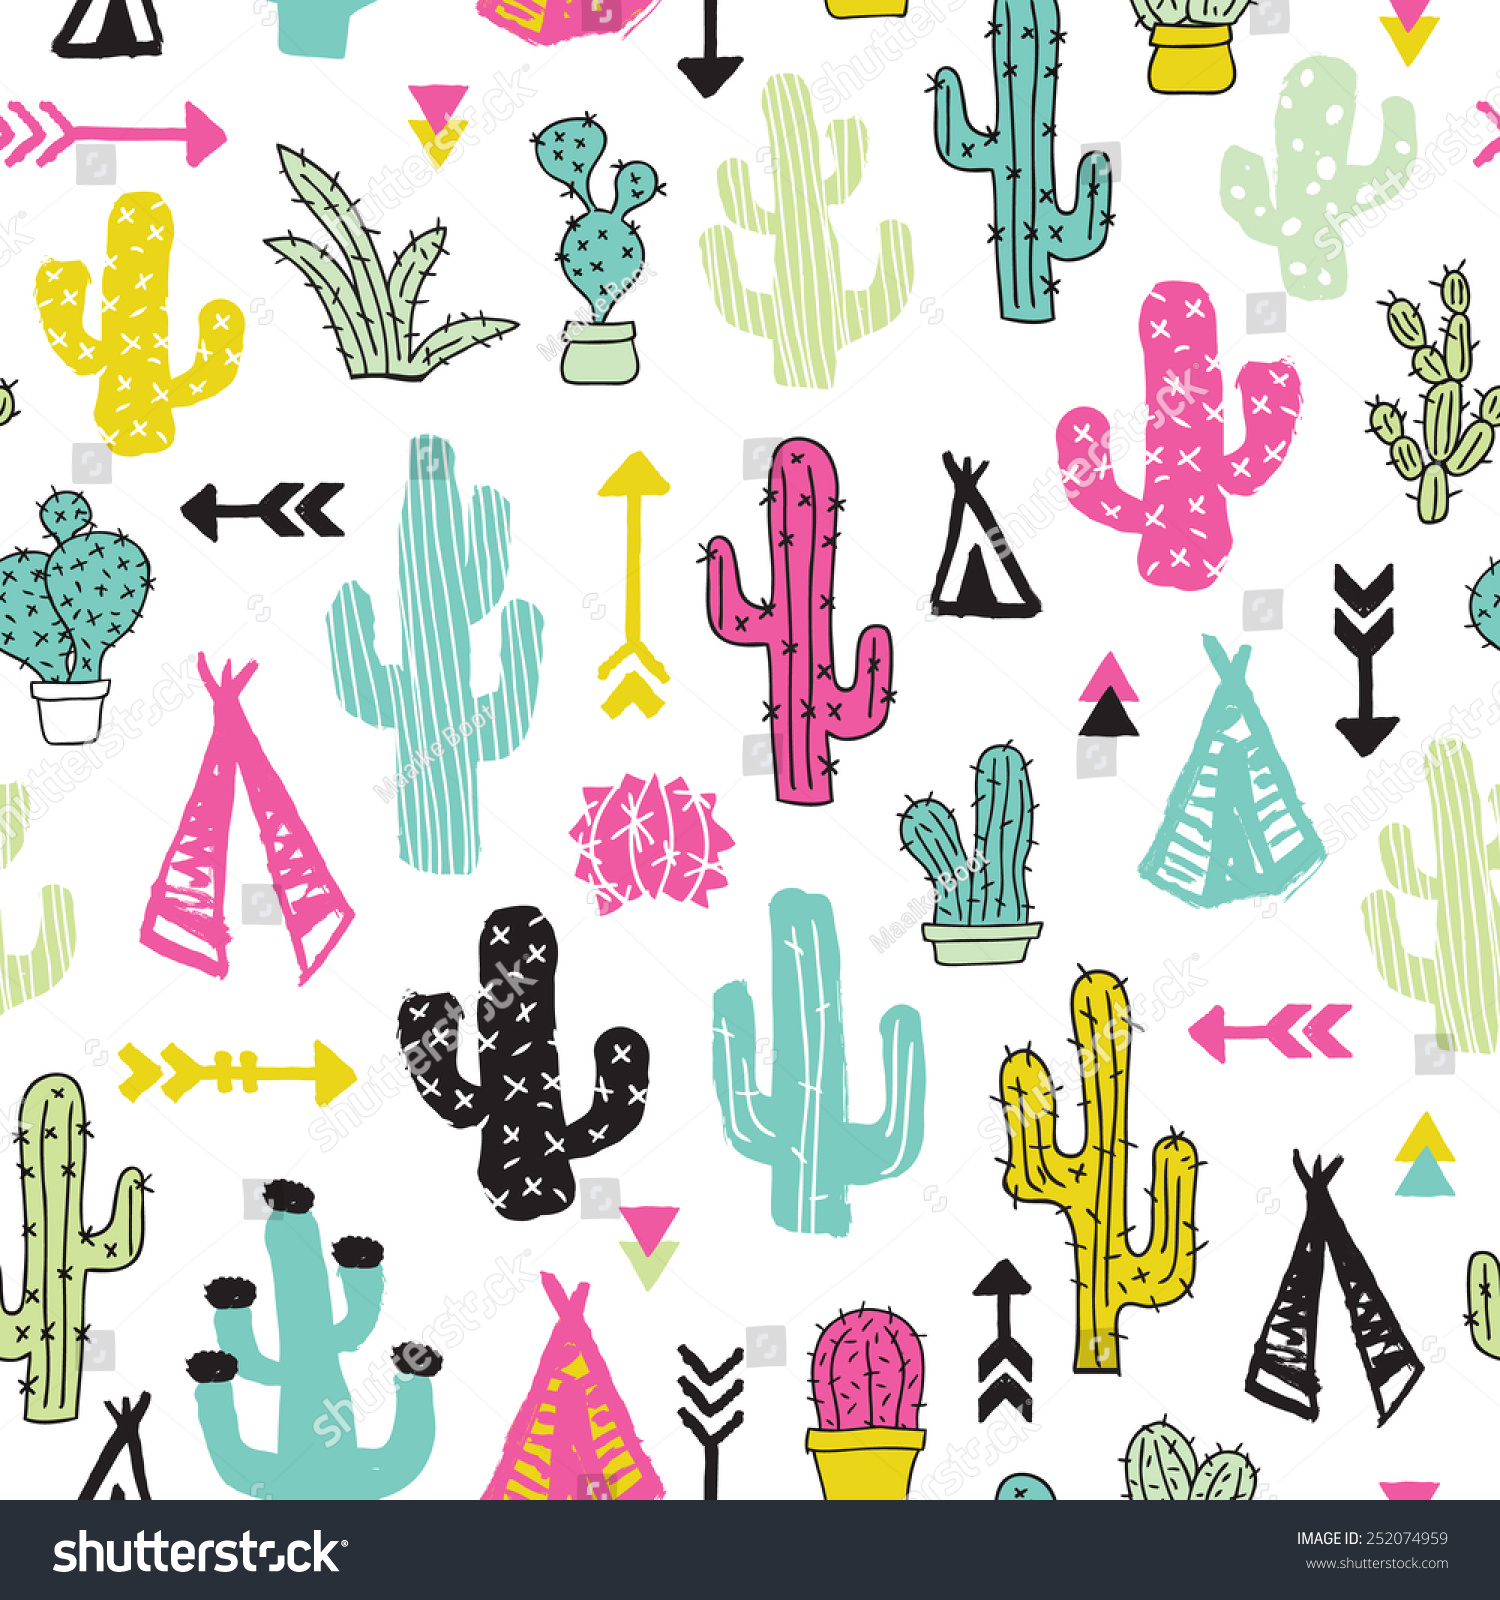 Colorful Cacti Indian Summer Teepee And Arrow Cactus